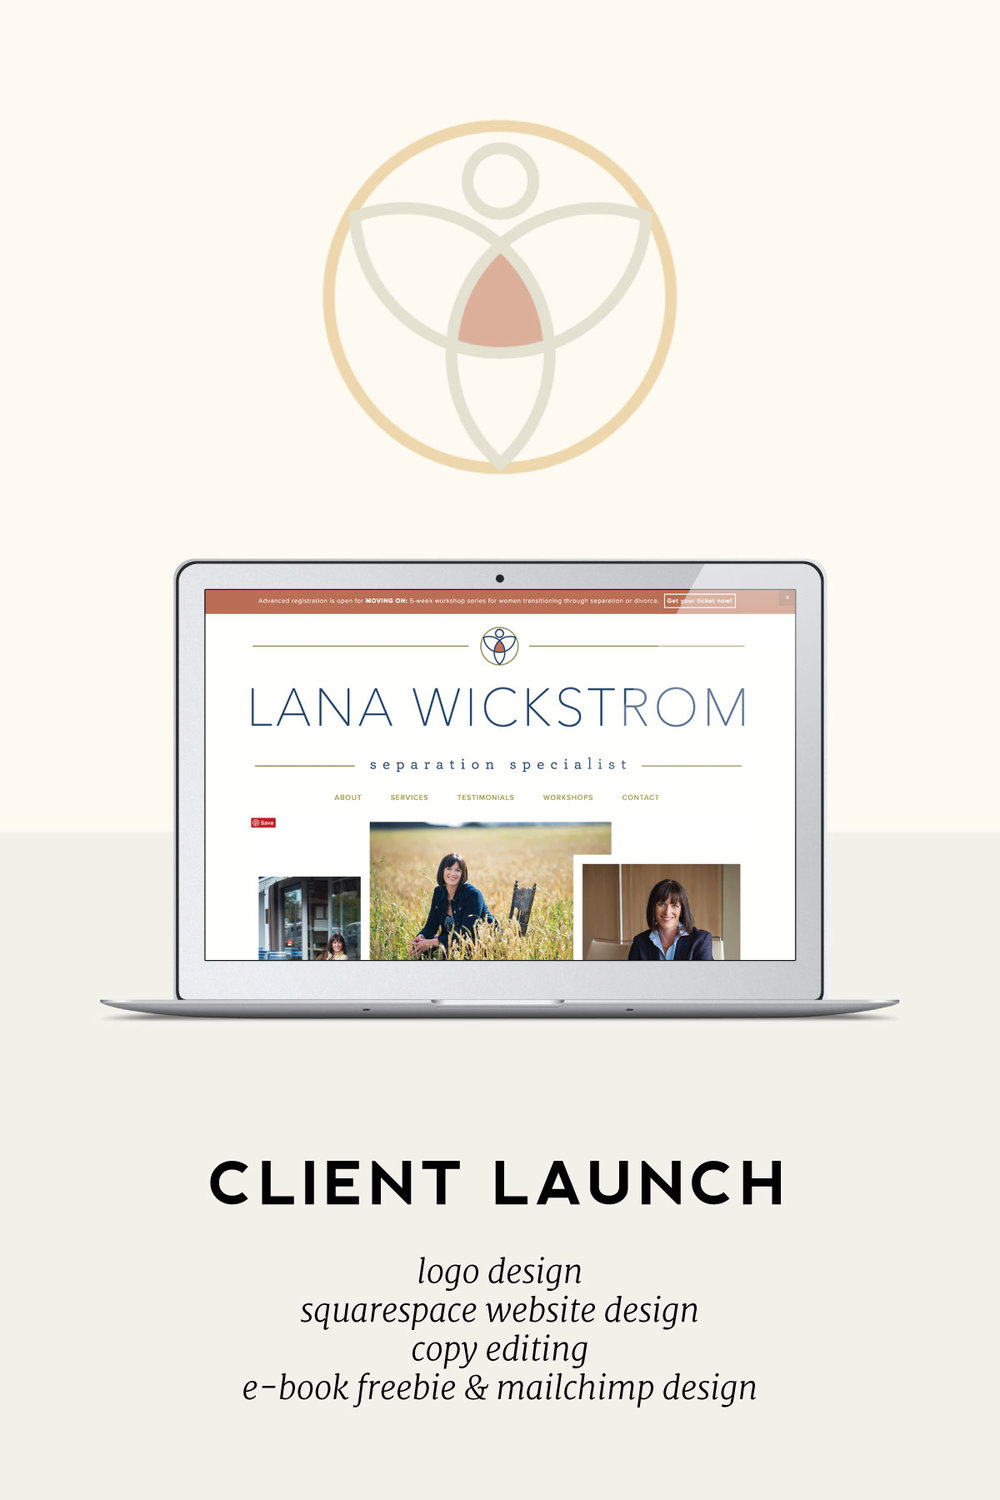 This week we're sharing the launch story of our wonderful client, Lana Wickstrom. Lana is a retired lawyer who specializes in helping couples navigate the confusing legal process of separation and divorce. Her brand needed to evoke calm, safety, strength, and professionalism. Read about the journey we took with Lana as we created her branding, Squarespace website, email freebie, Mailchimp template design, and polished her copy.